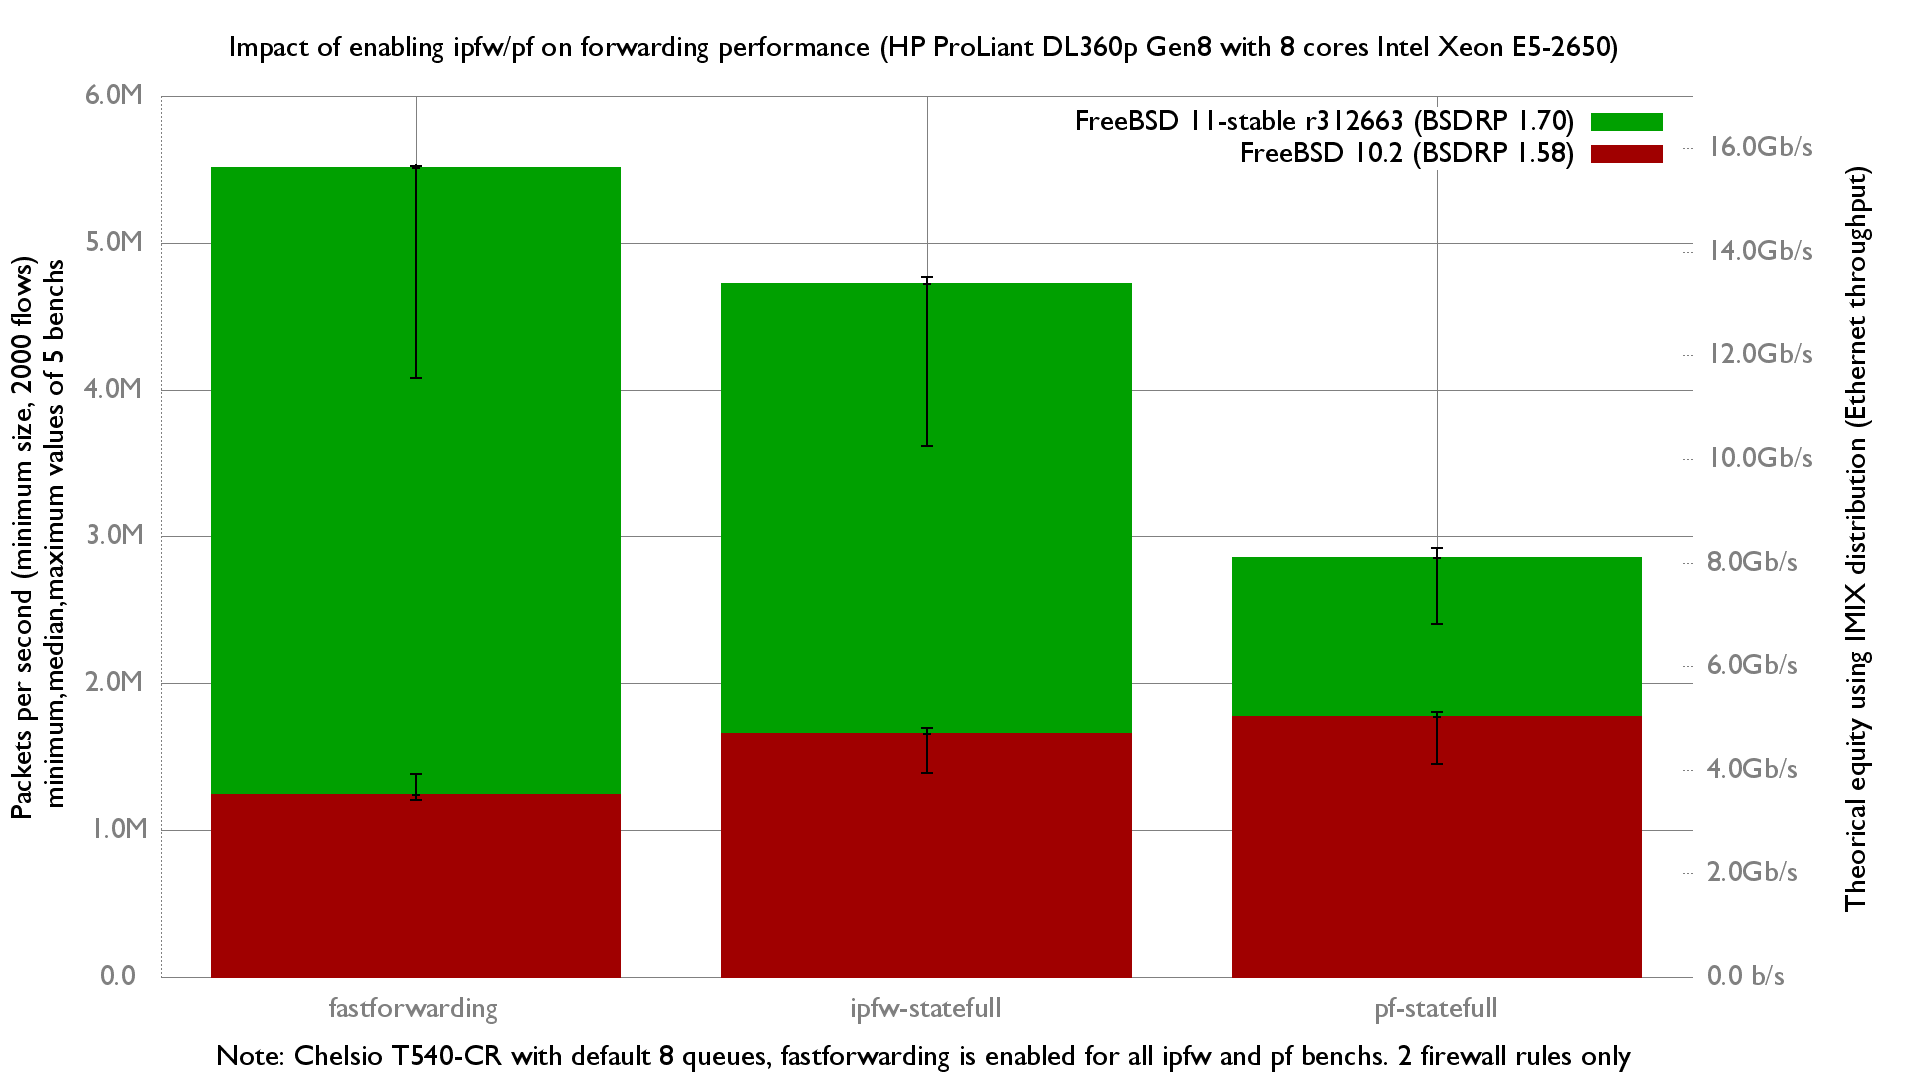 Impact of ipfw and pf on 8 cores Xeon E5-2650 with Chelsio T540-CR on FreeBSD 10.1